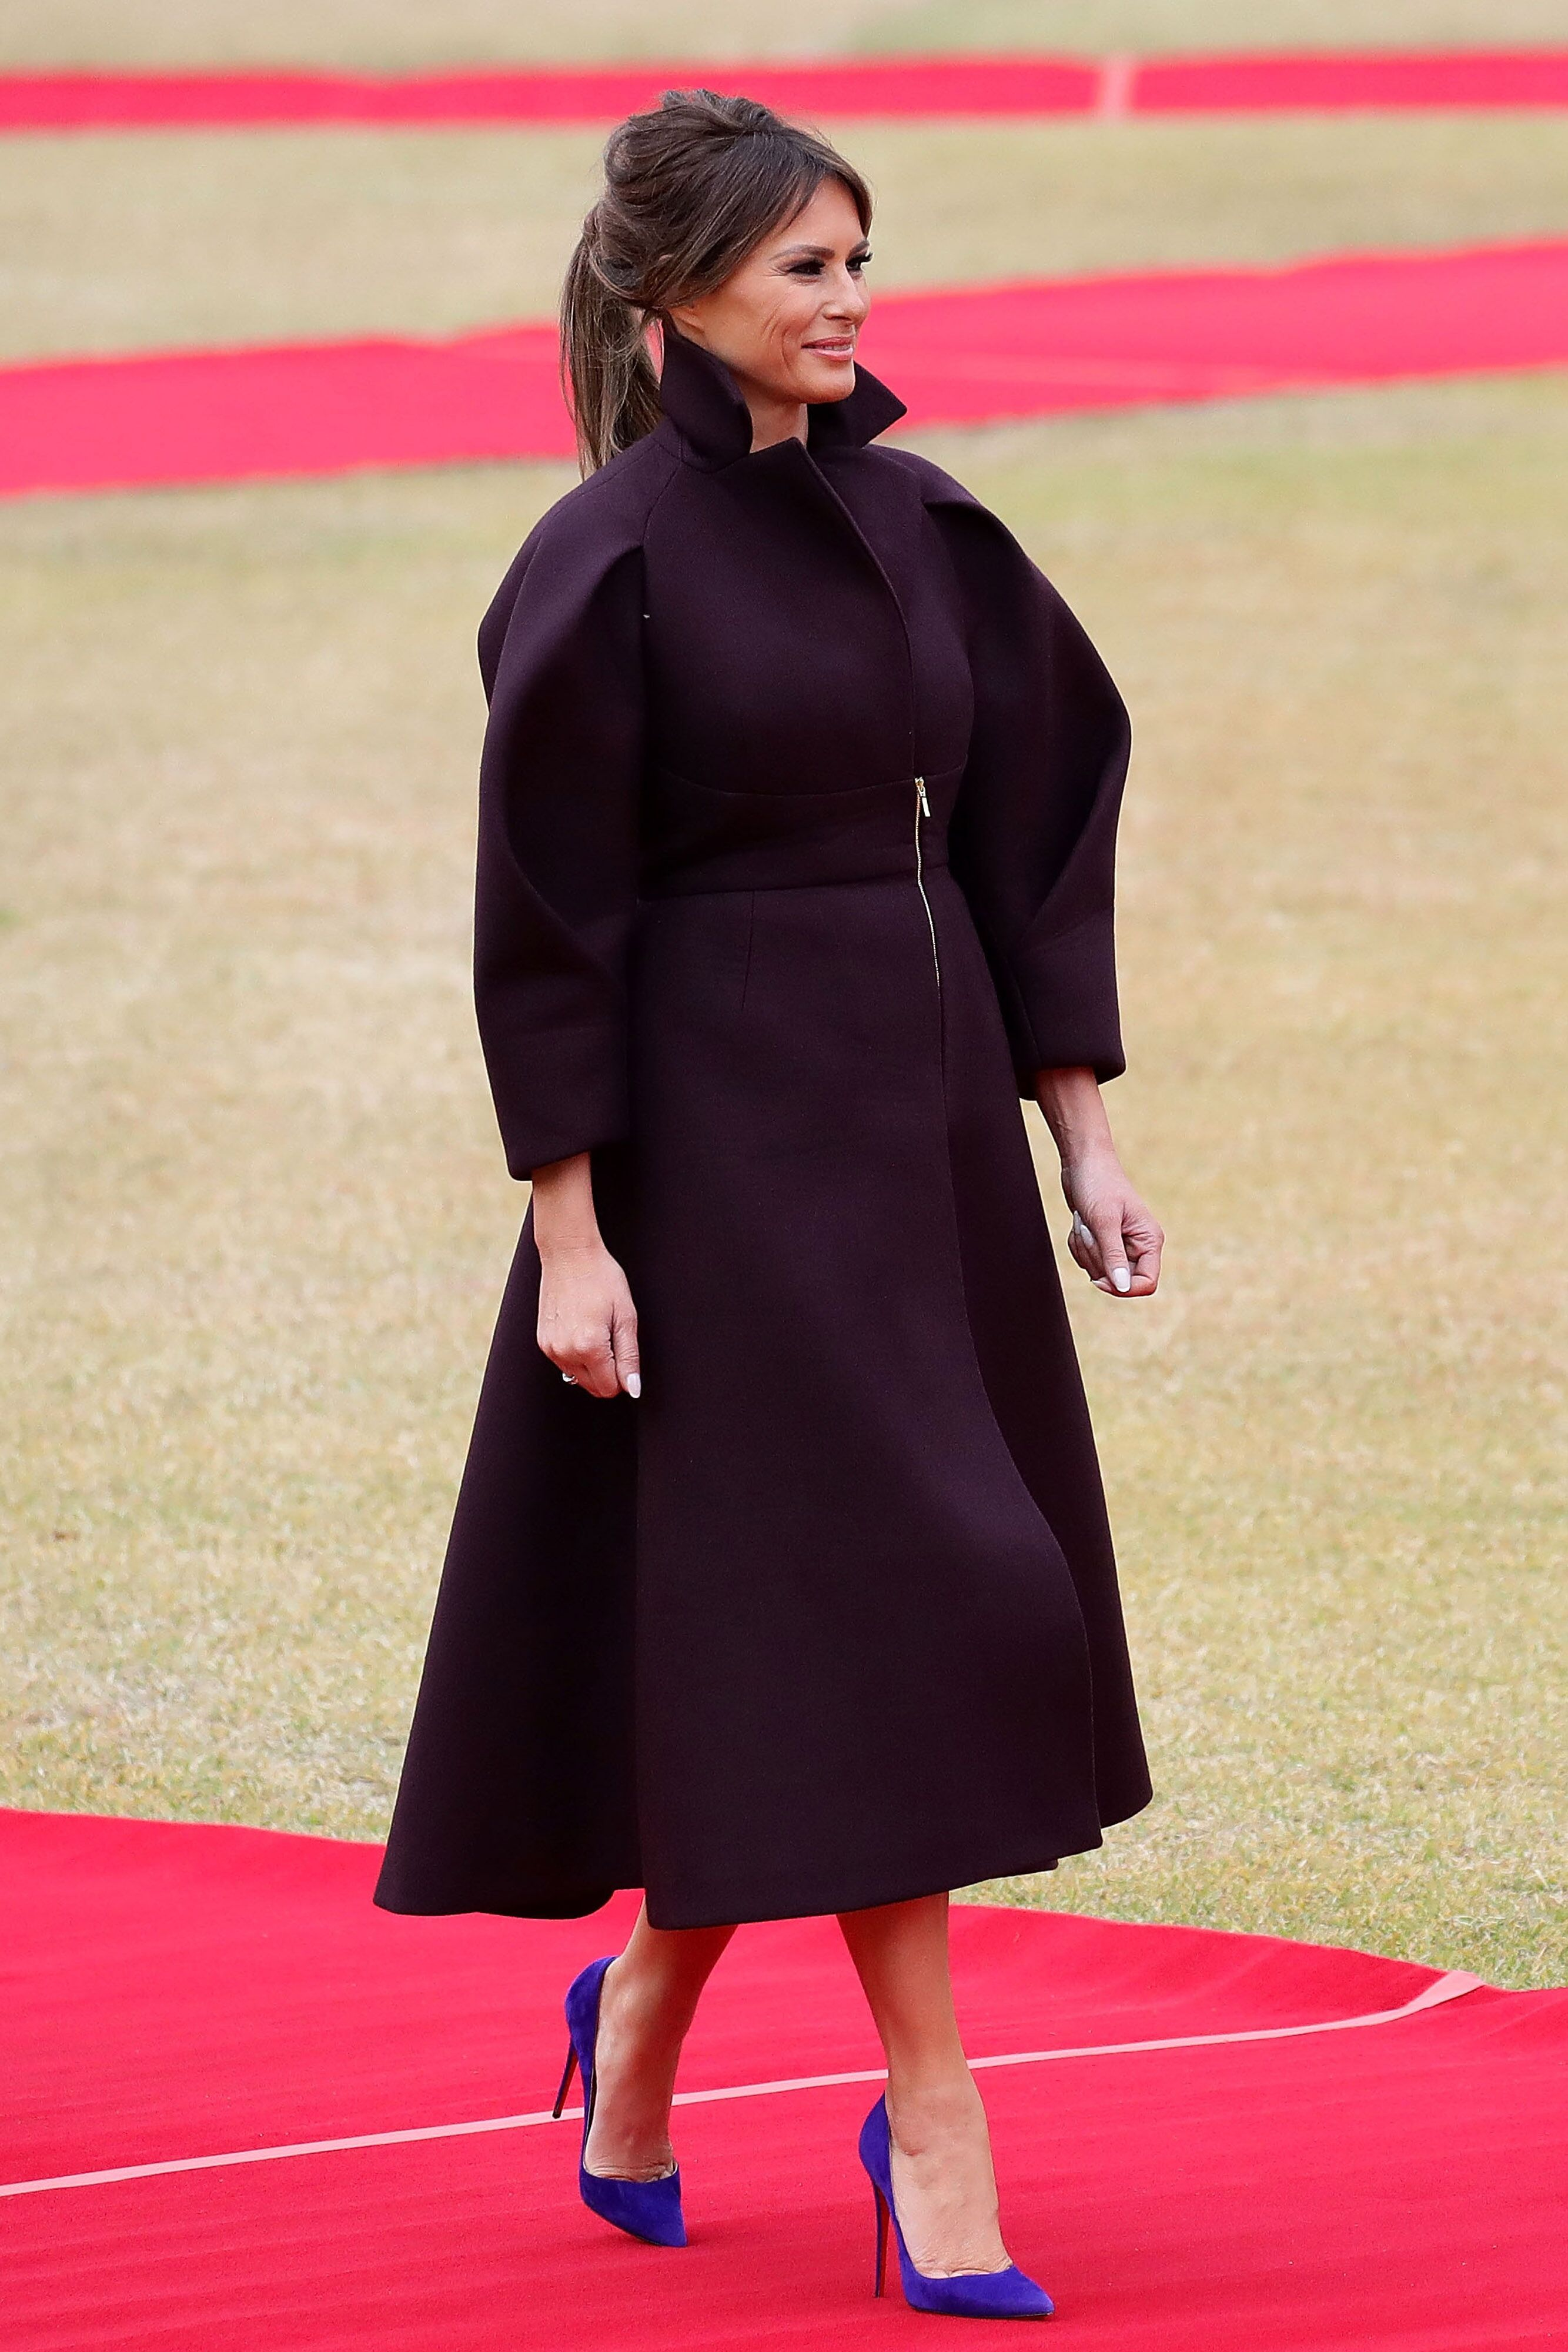 Melania Trump during a welcoming ceremony held at the presidential Blue House on November 7, 2017 in Seoul, South Korea. | Photo: Getty Images